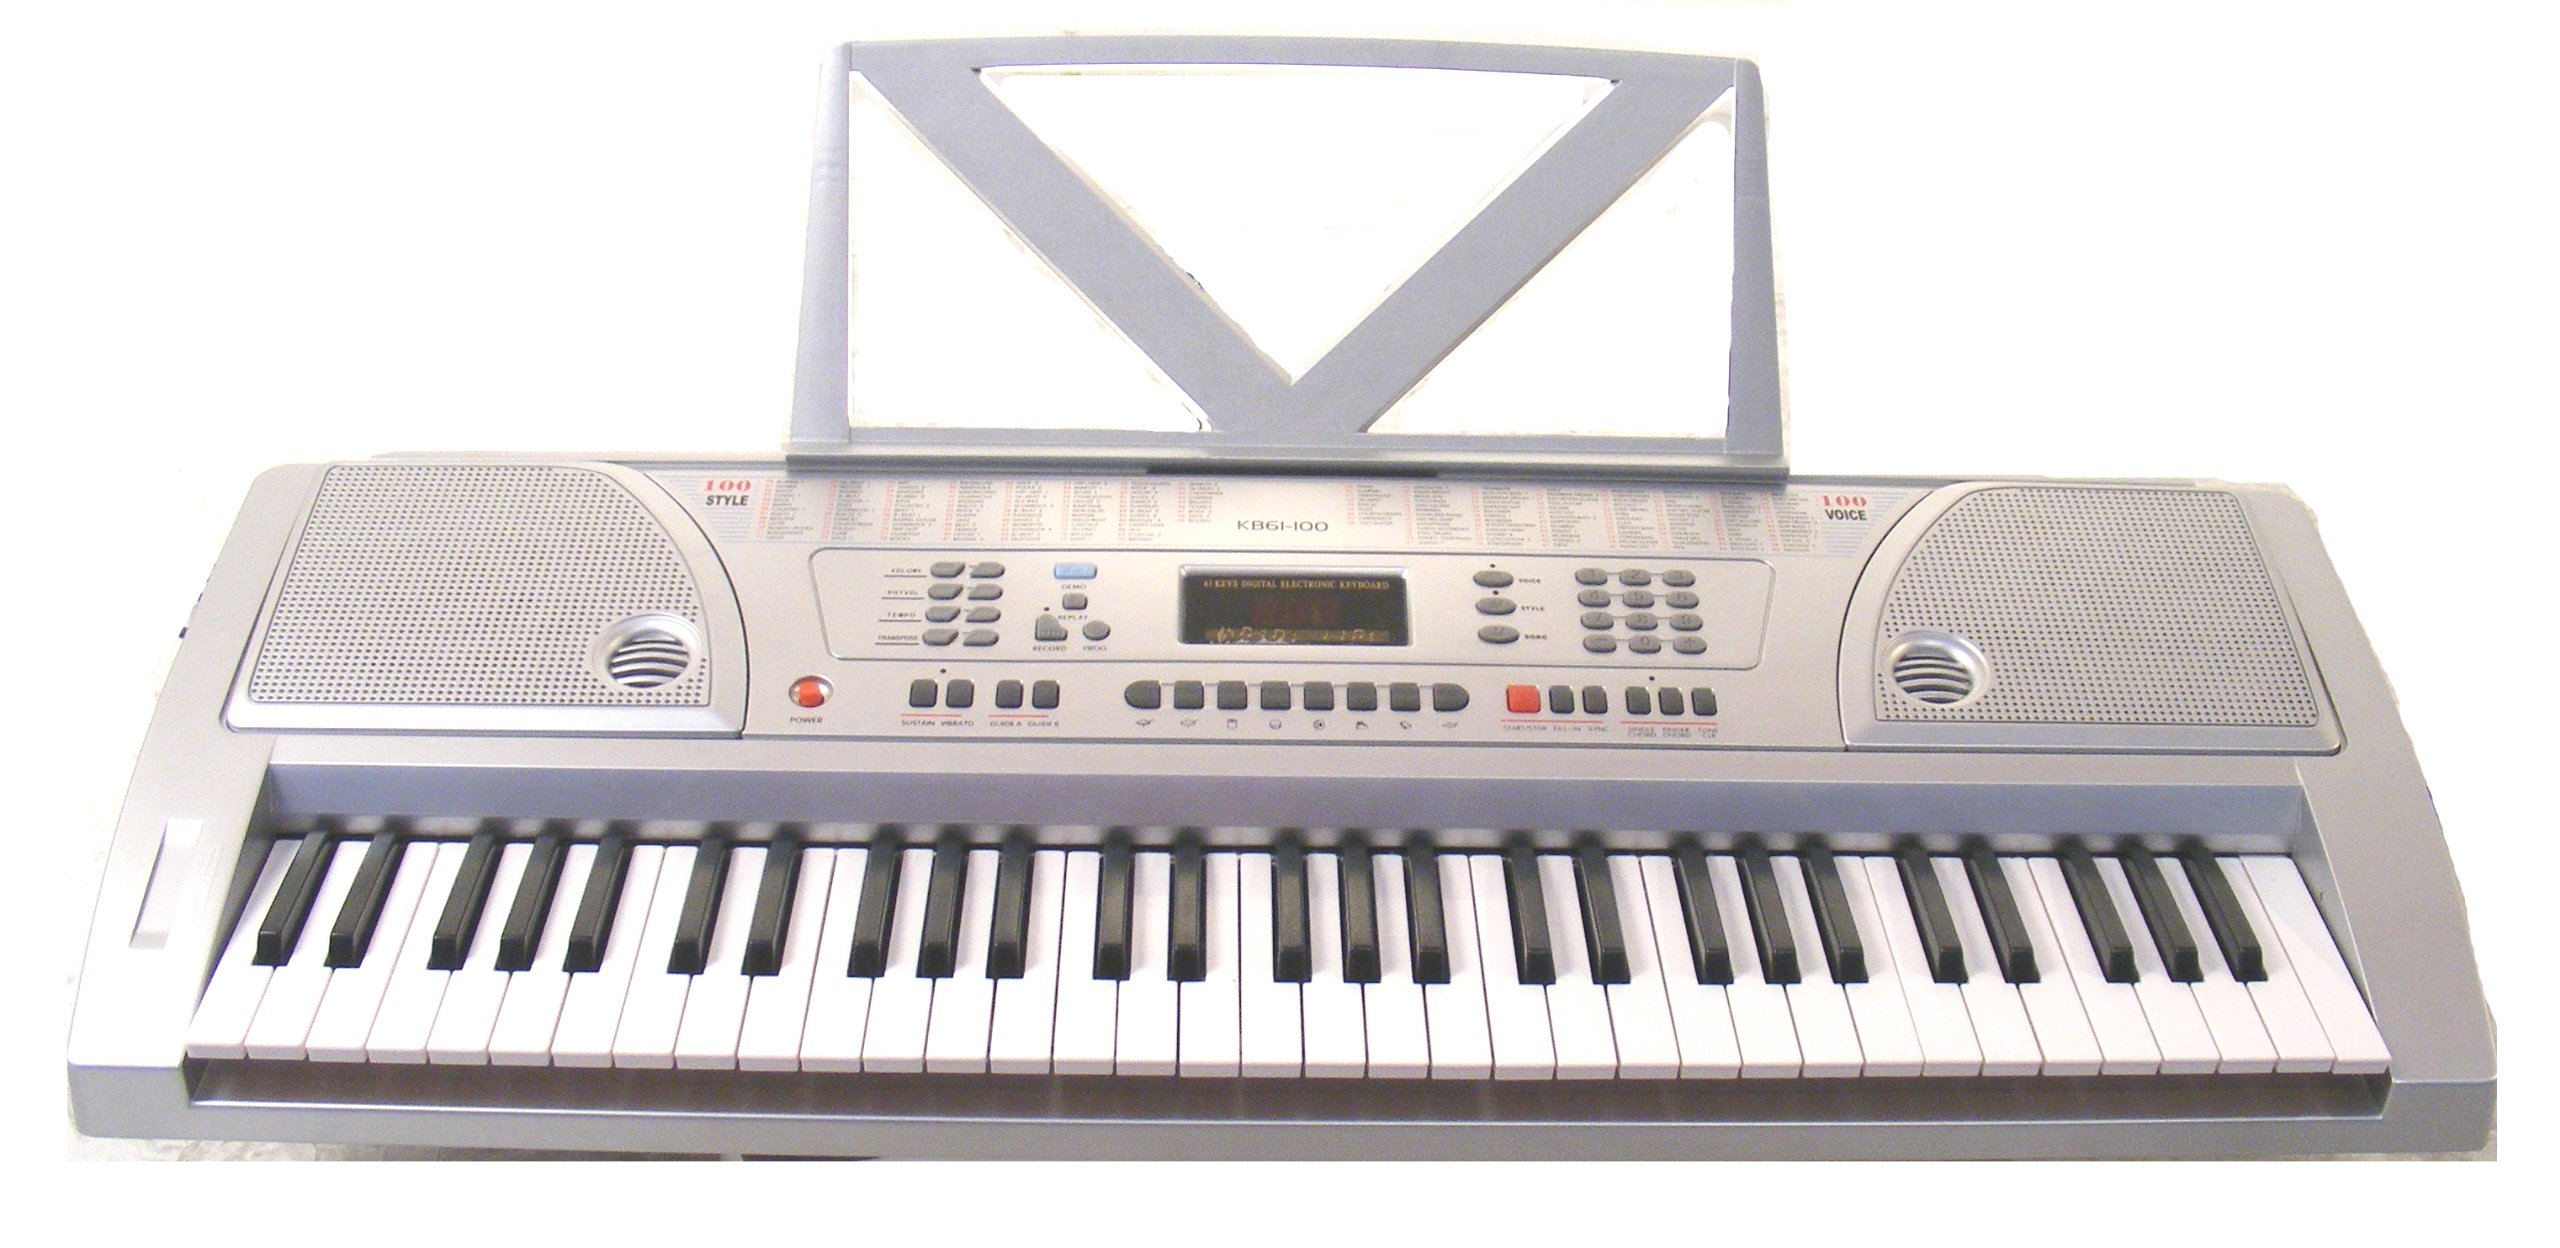 Huntington KB61-100 61-Key Portable Electronic Keyboard,  Silver by Huntington